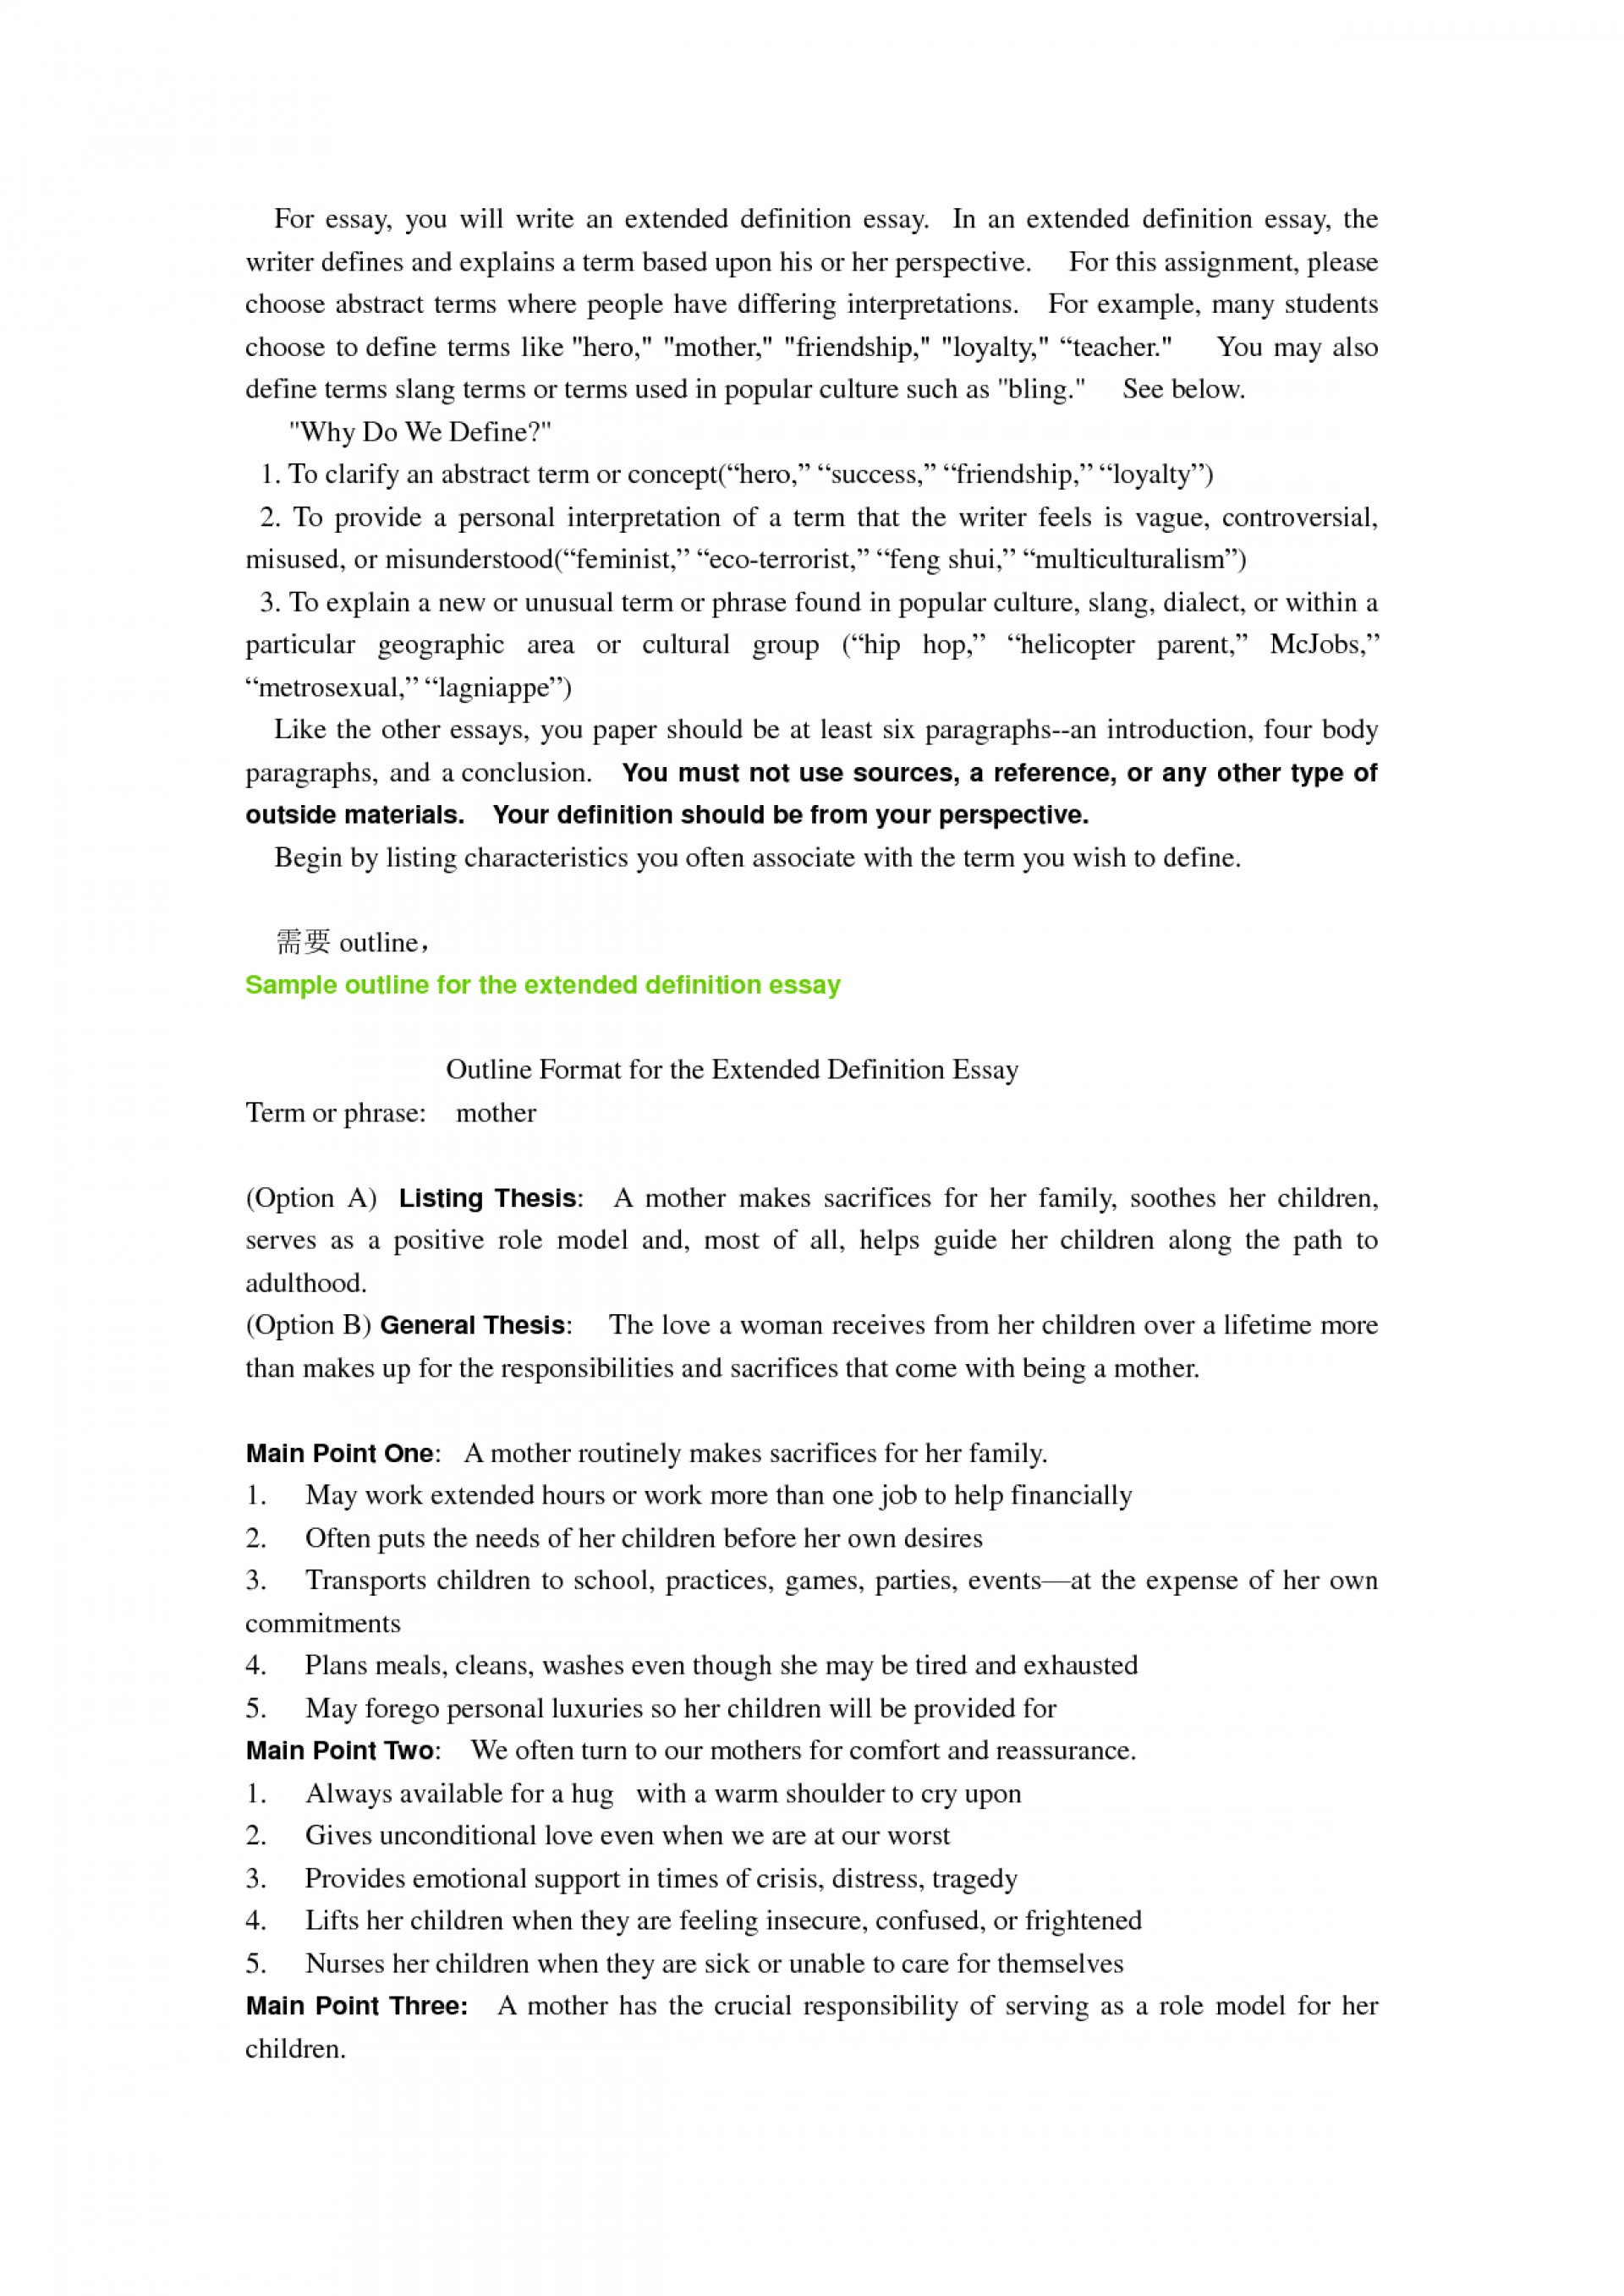 018 G5v3mngunh Essay Example Definition Unique Outline Writing Pdf Hero Success 1920